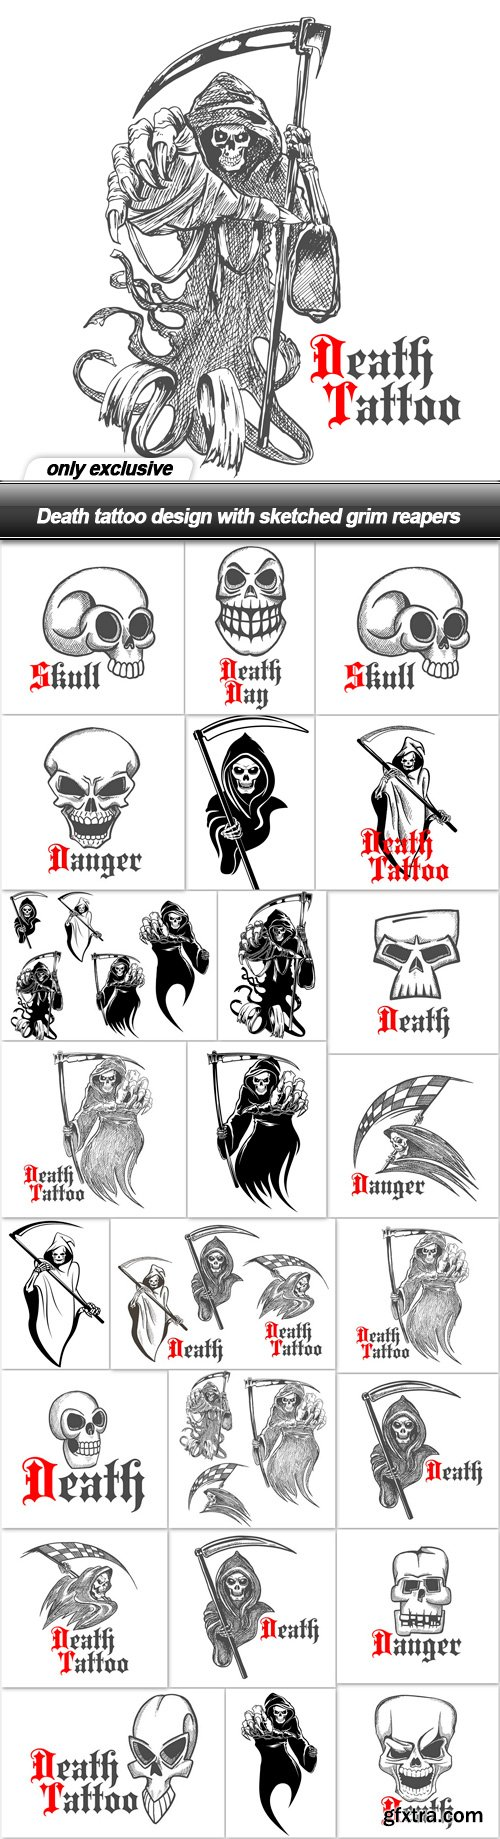 Death tattoo design with sketched grim reapers - 25 EPS